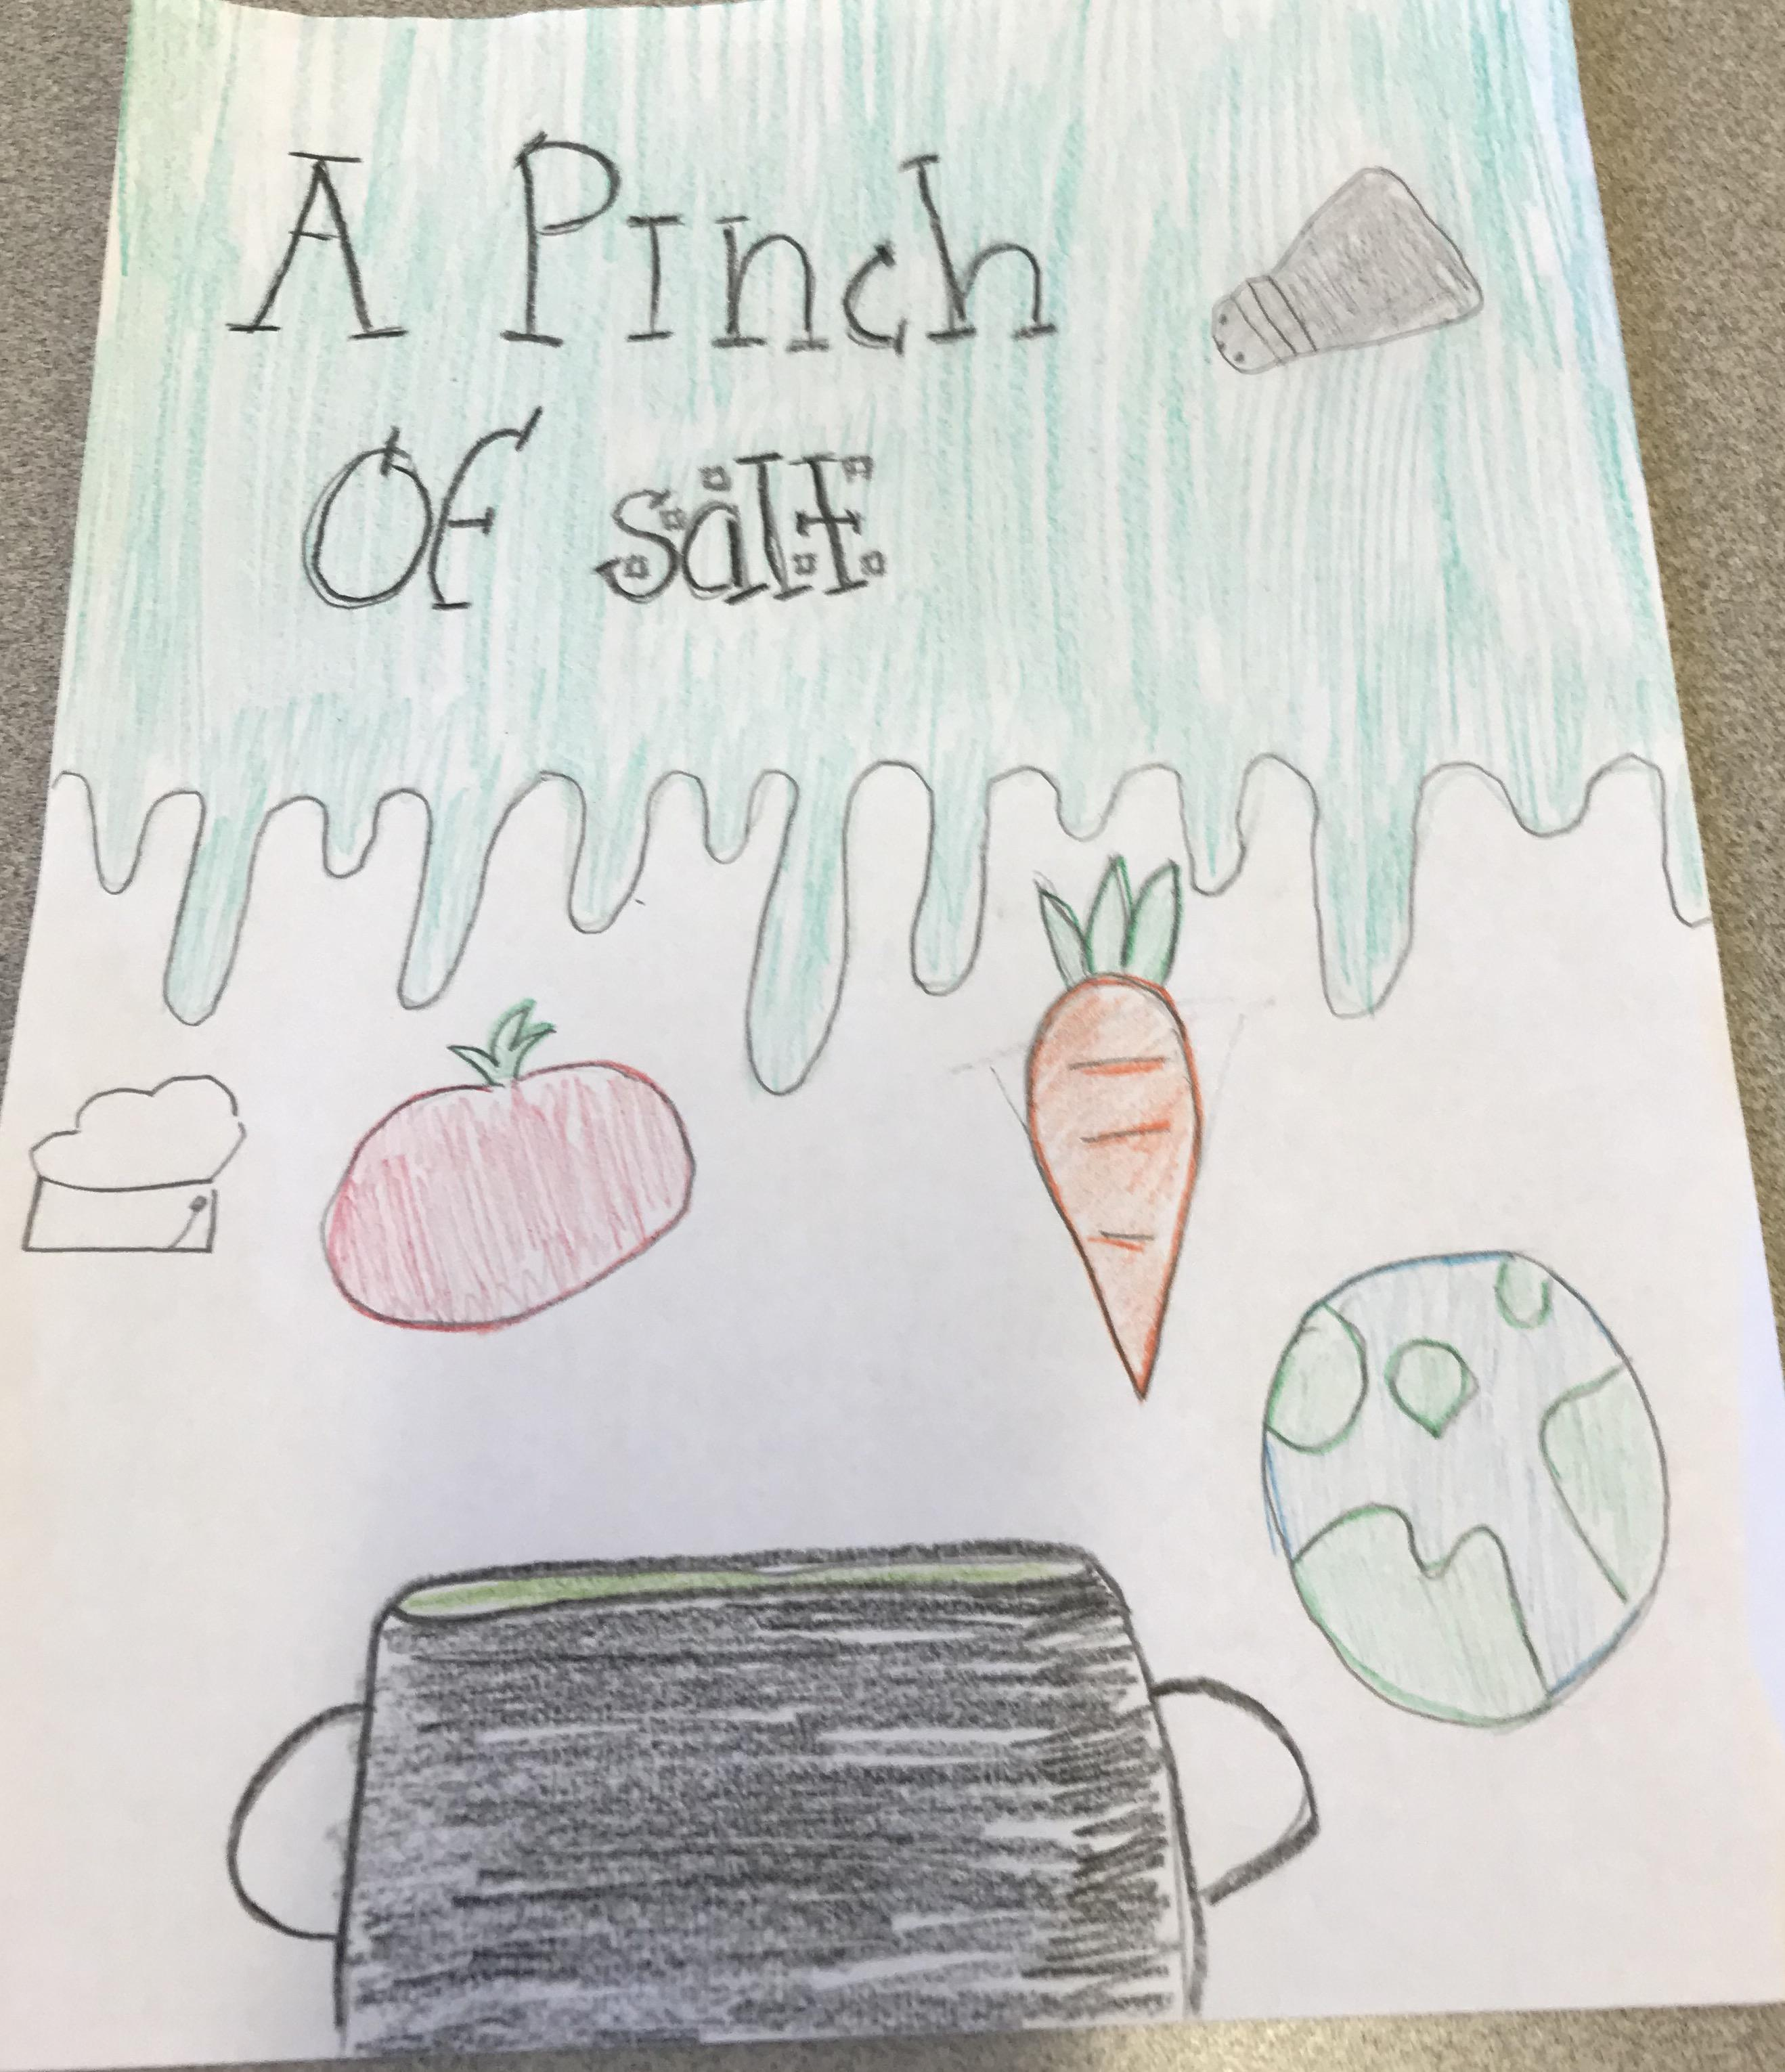 Cookbook cover contest entry